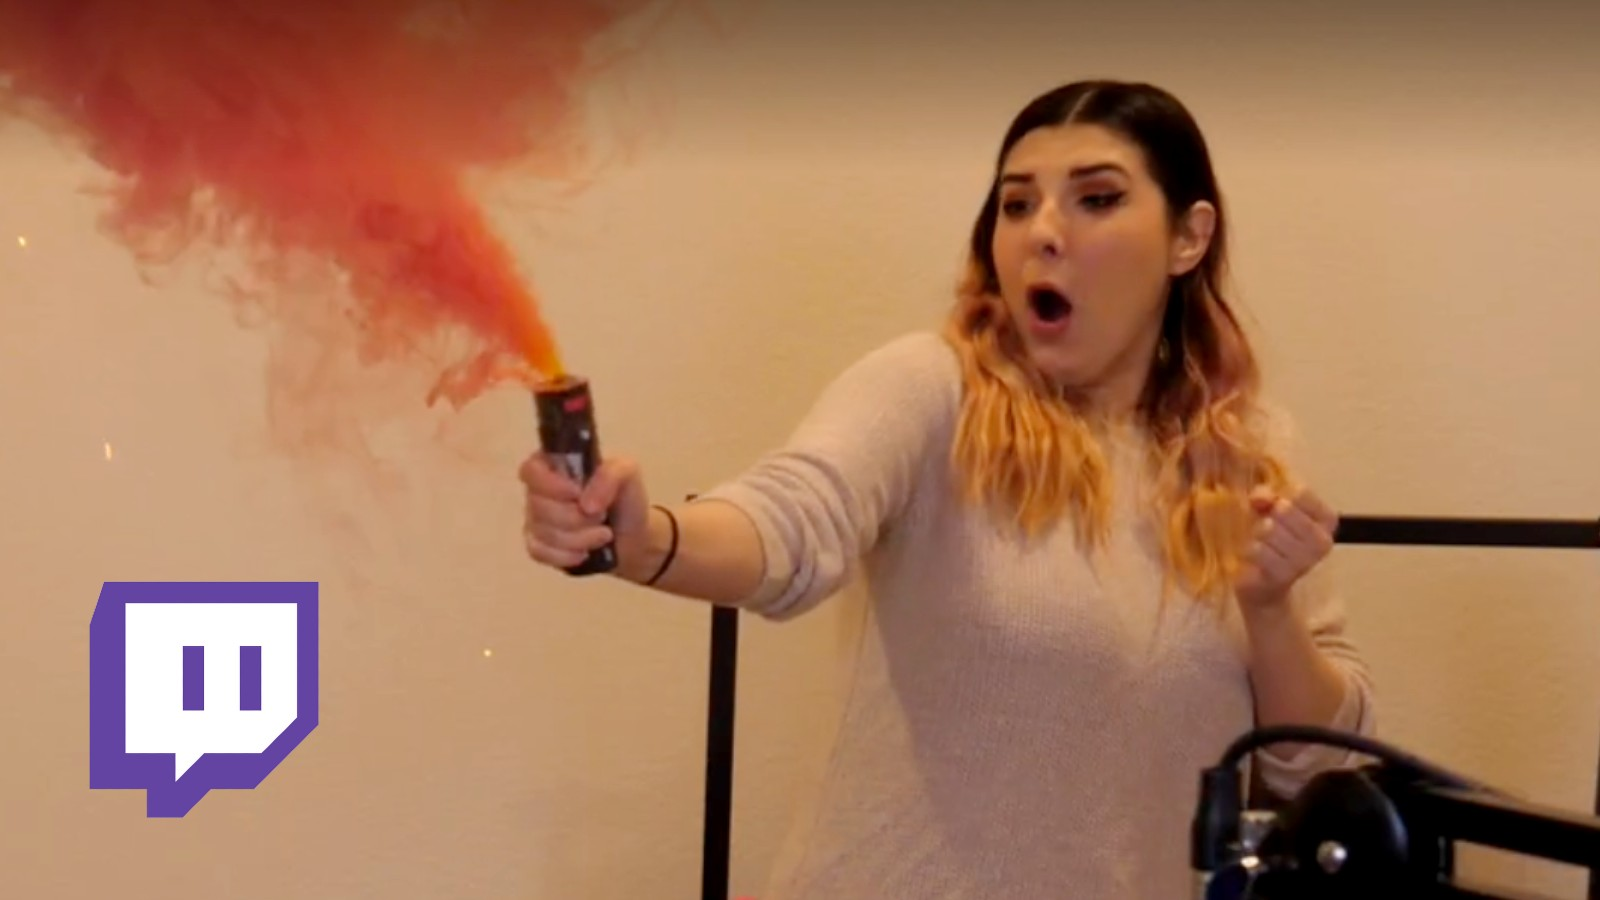 Twitch streamer holds smoke grenade with shocked face